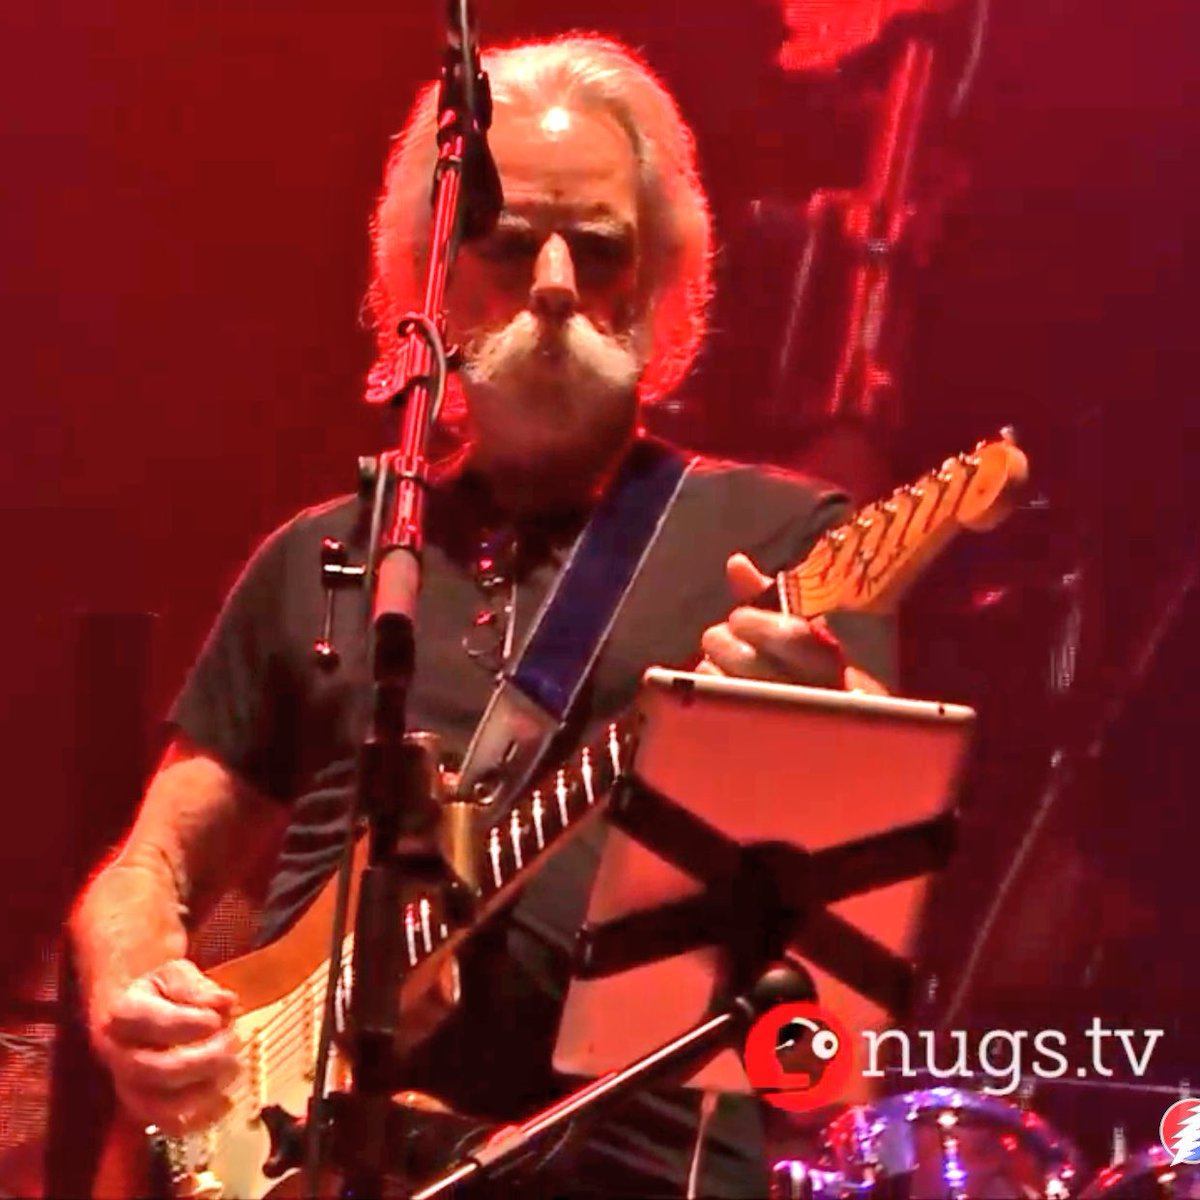 And... The Music Never Stopped. We're live from #vegas w a free stream @deadandcompany opener on FB and YouTube https://t.co/GbpzO1bAzZ